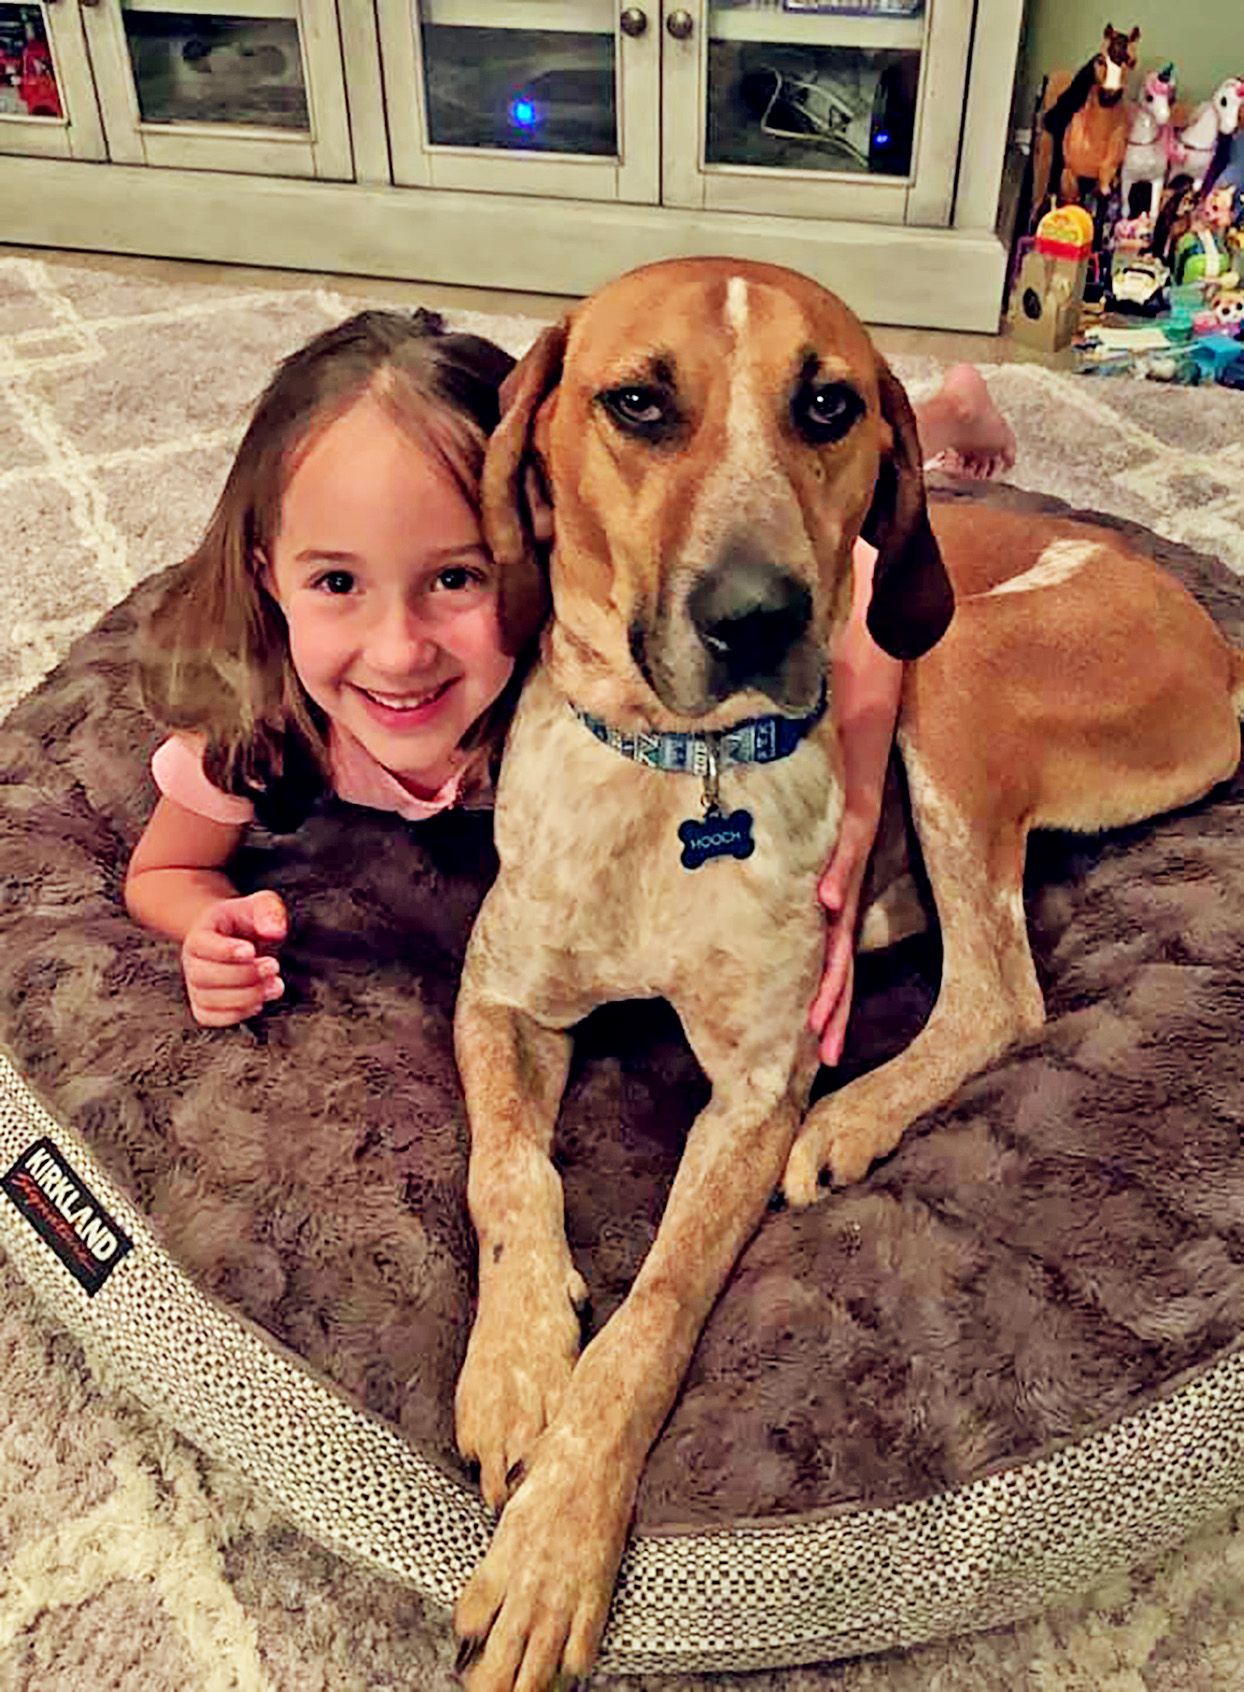 Little girl lays on dog bed with large dog named Hooch